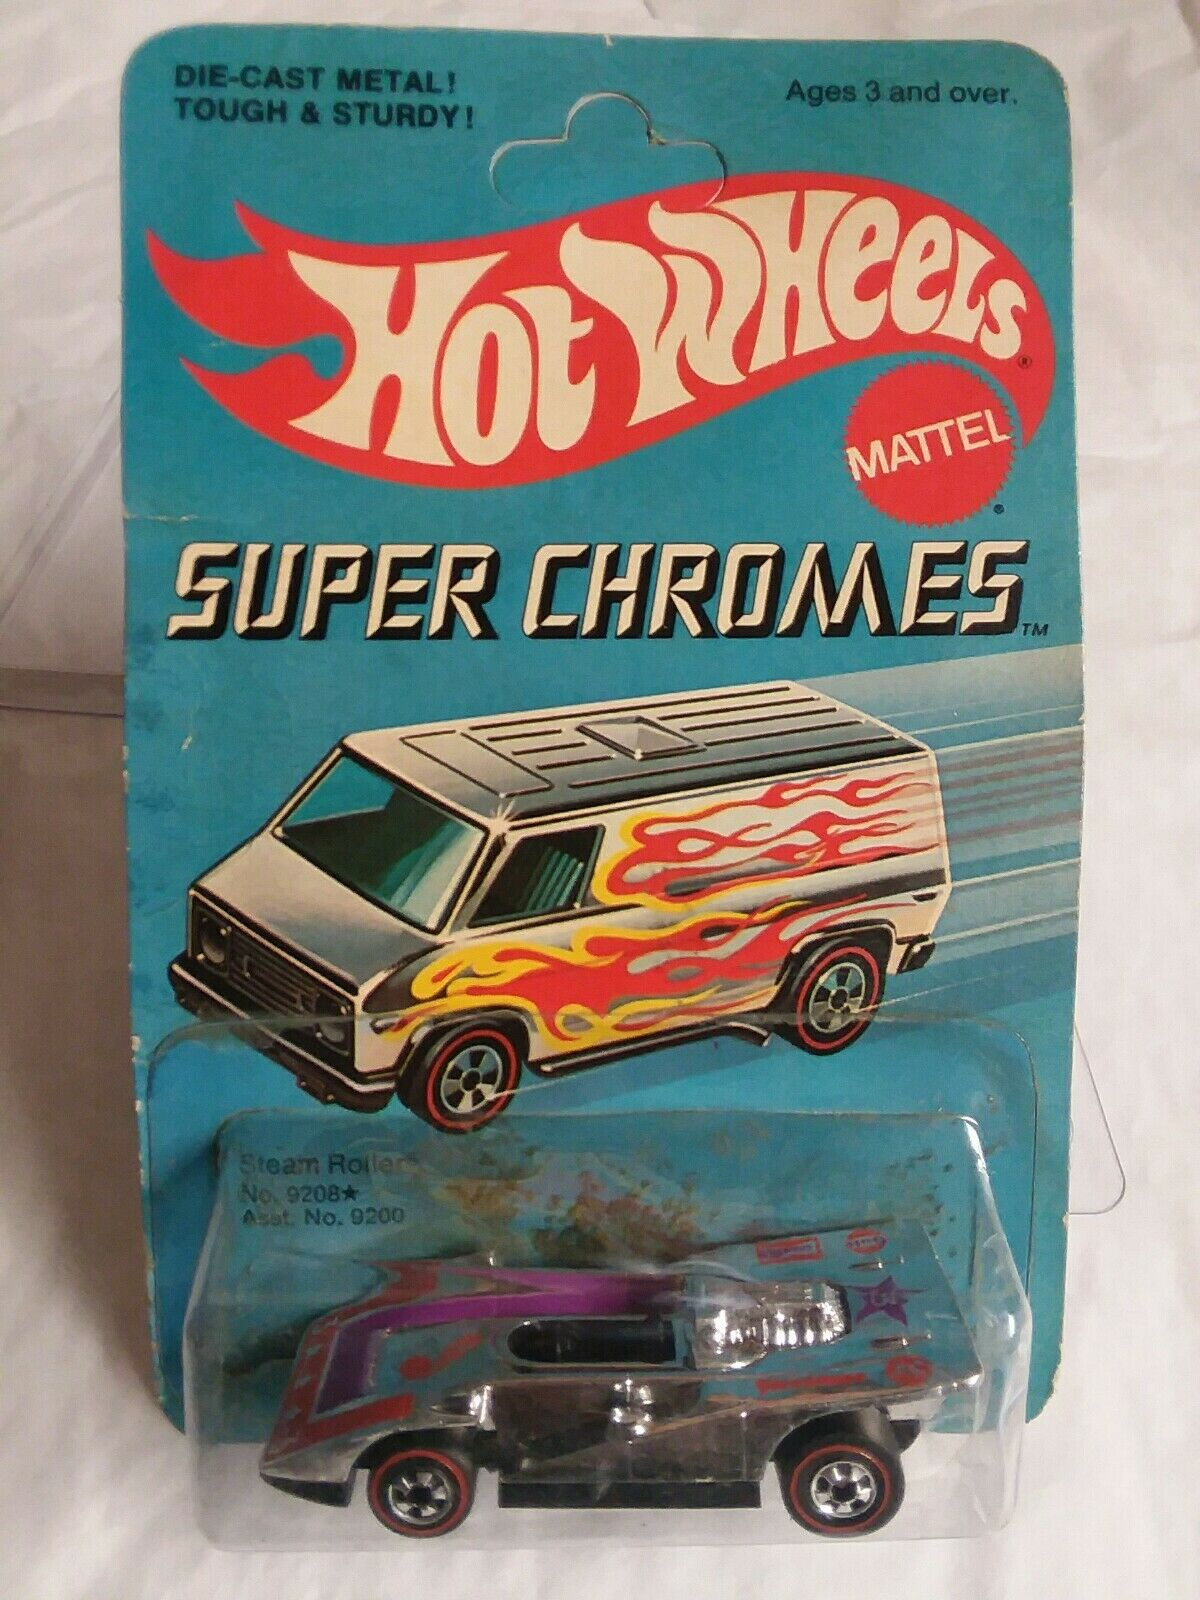 HOT WHEELS SUPER CHROMES REDLINES STEAM ROLLER MIBP UNPUNCHED